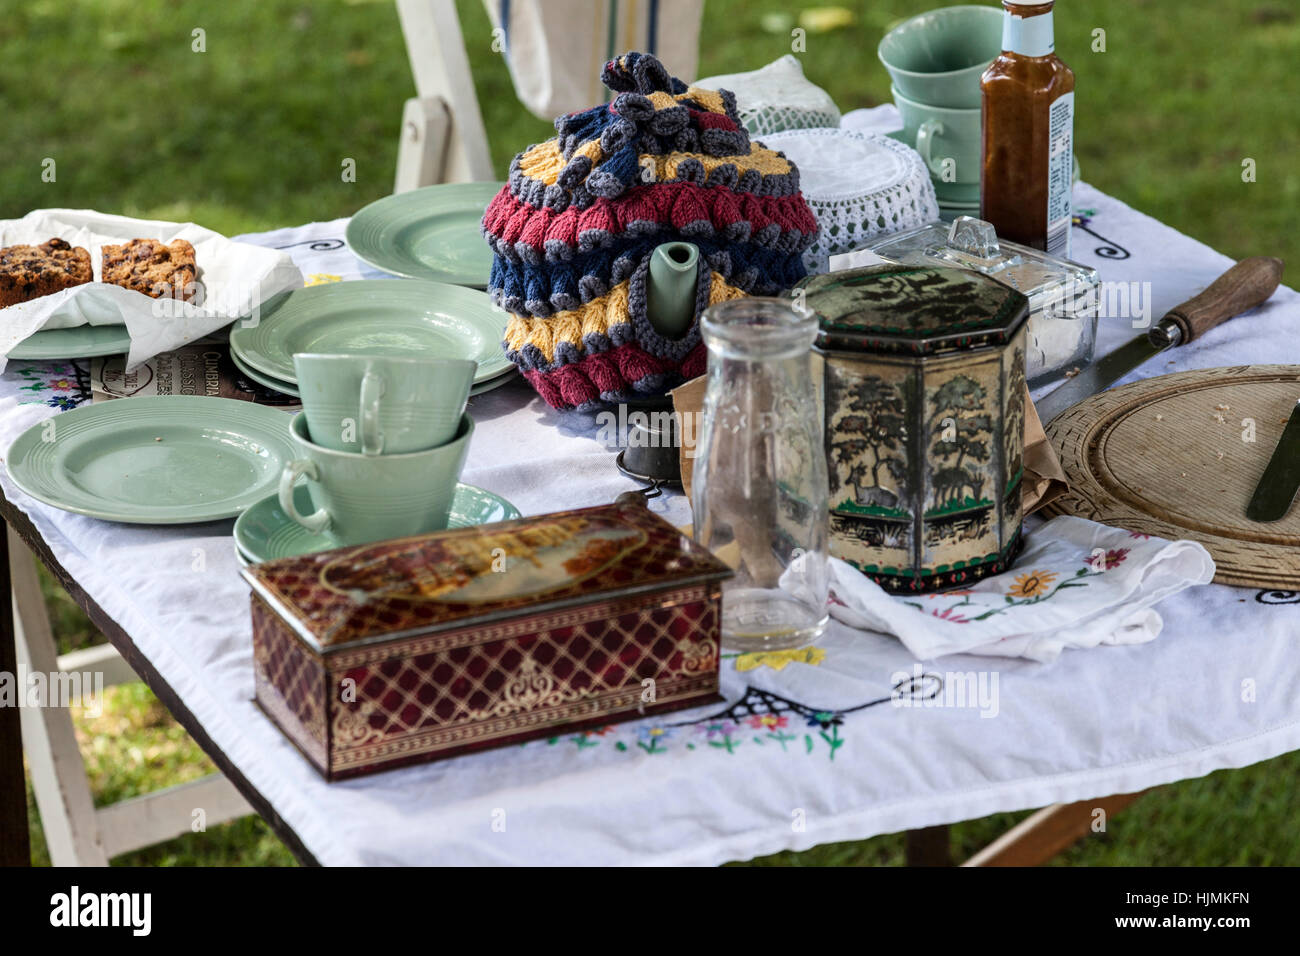 1940's Dinner Table Set up as Part of a 1940's Re-enactors Weekend in Barnard Castle. - Stock Image